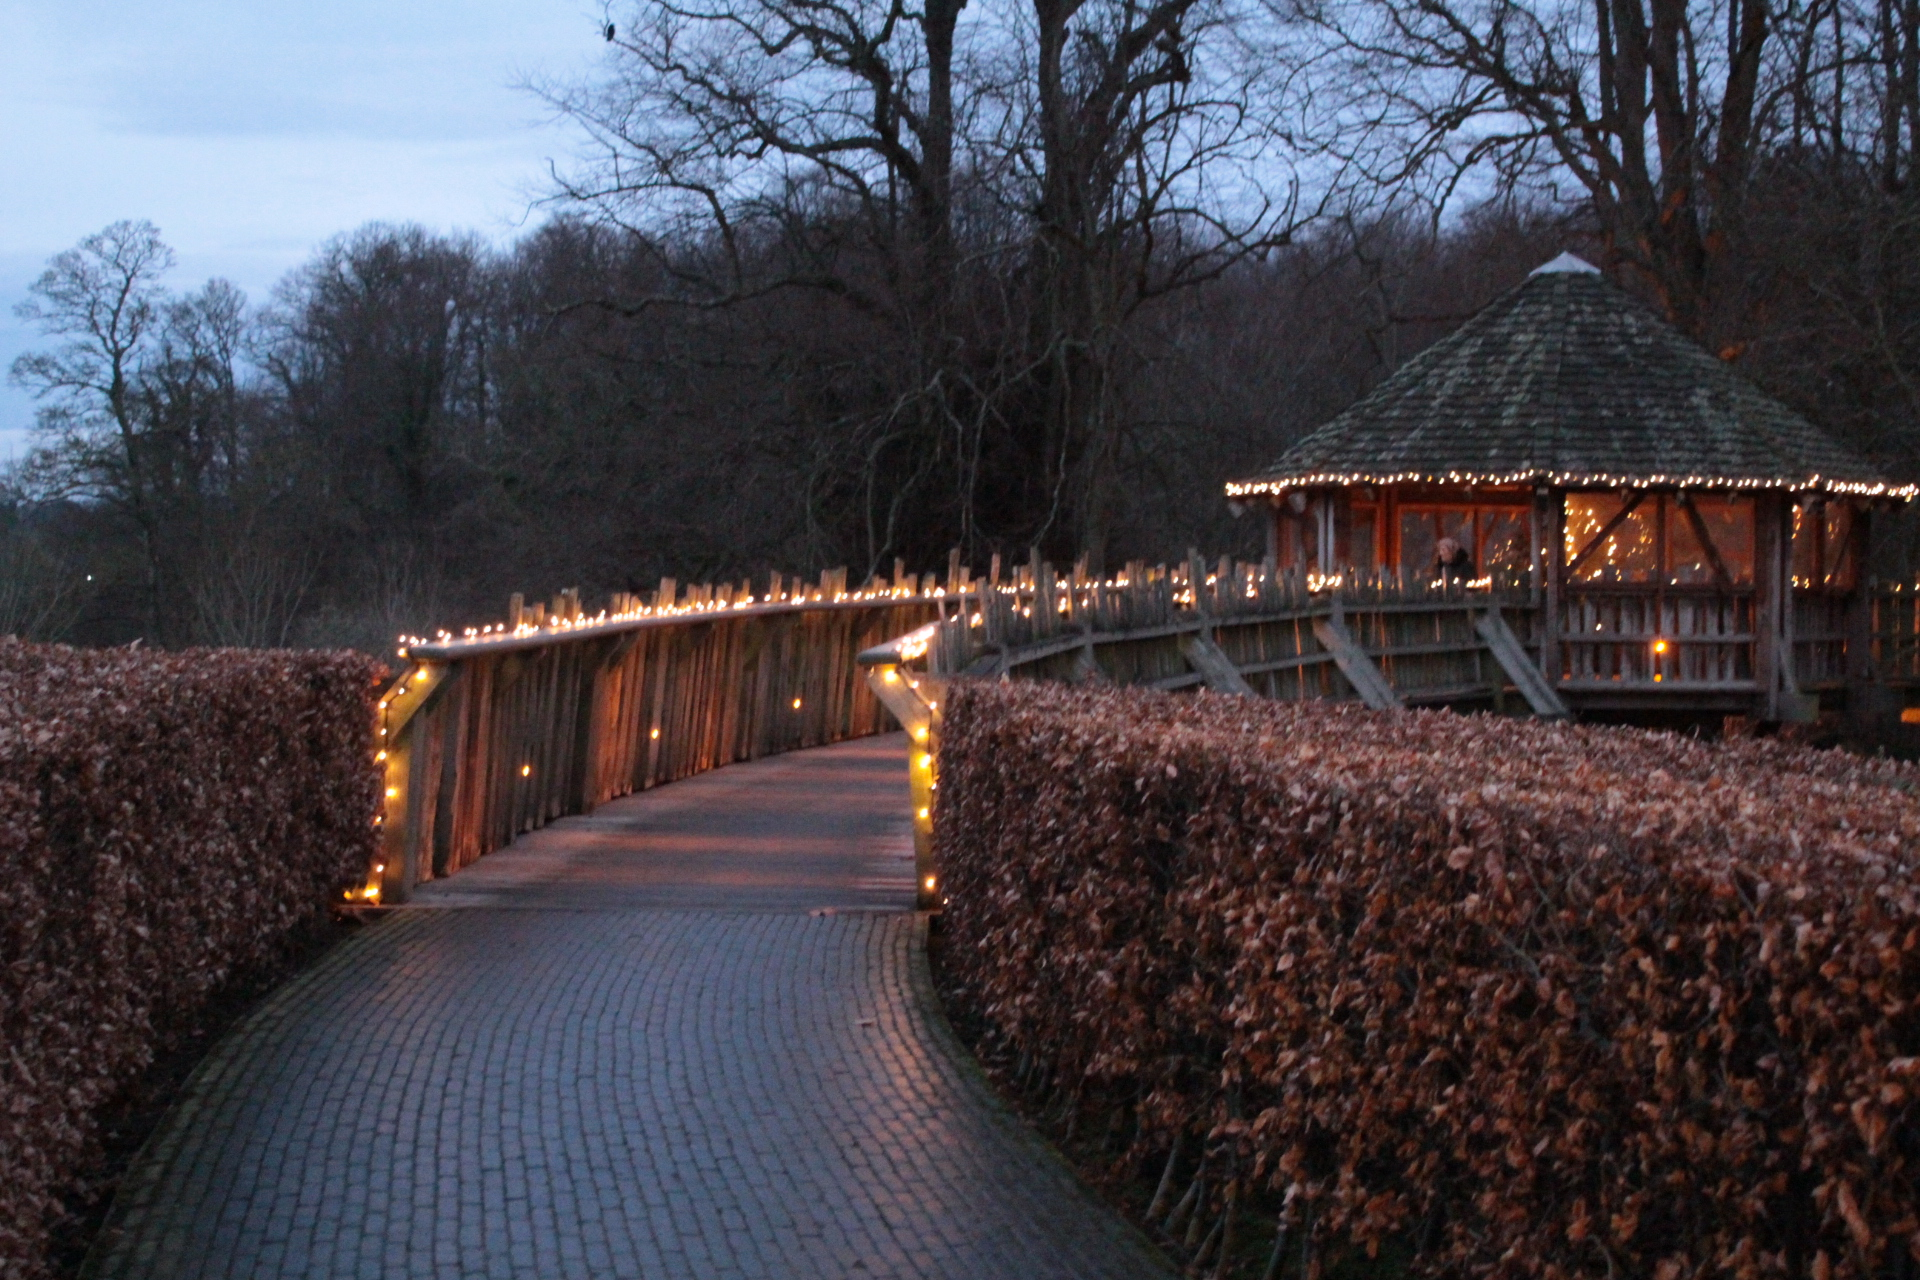 Alnwick Gardens Treehouse at night